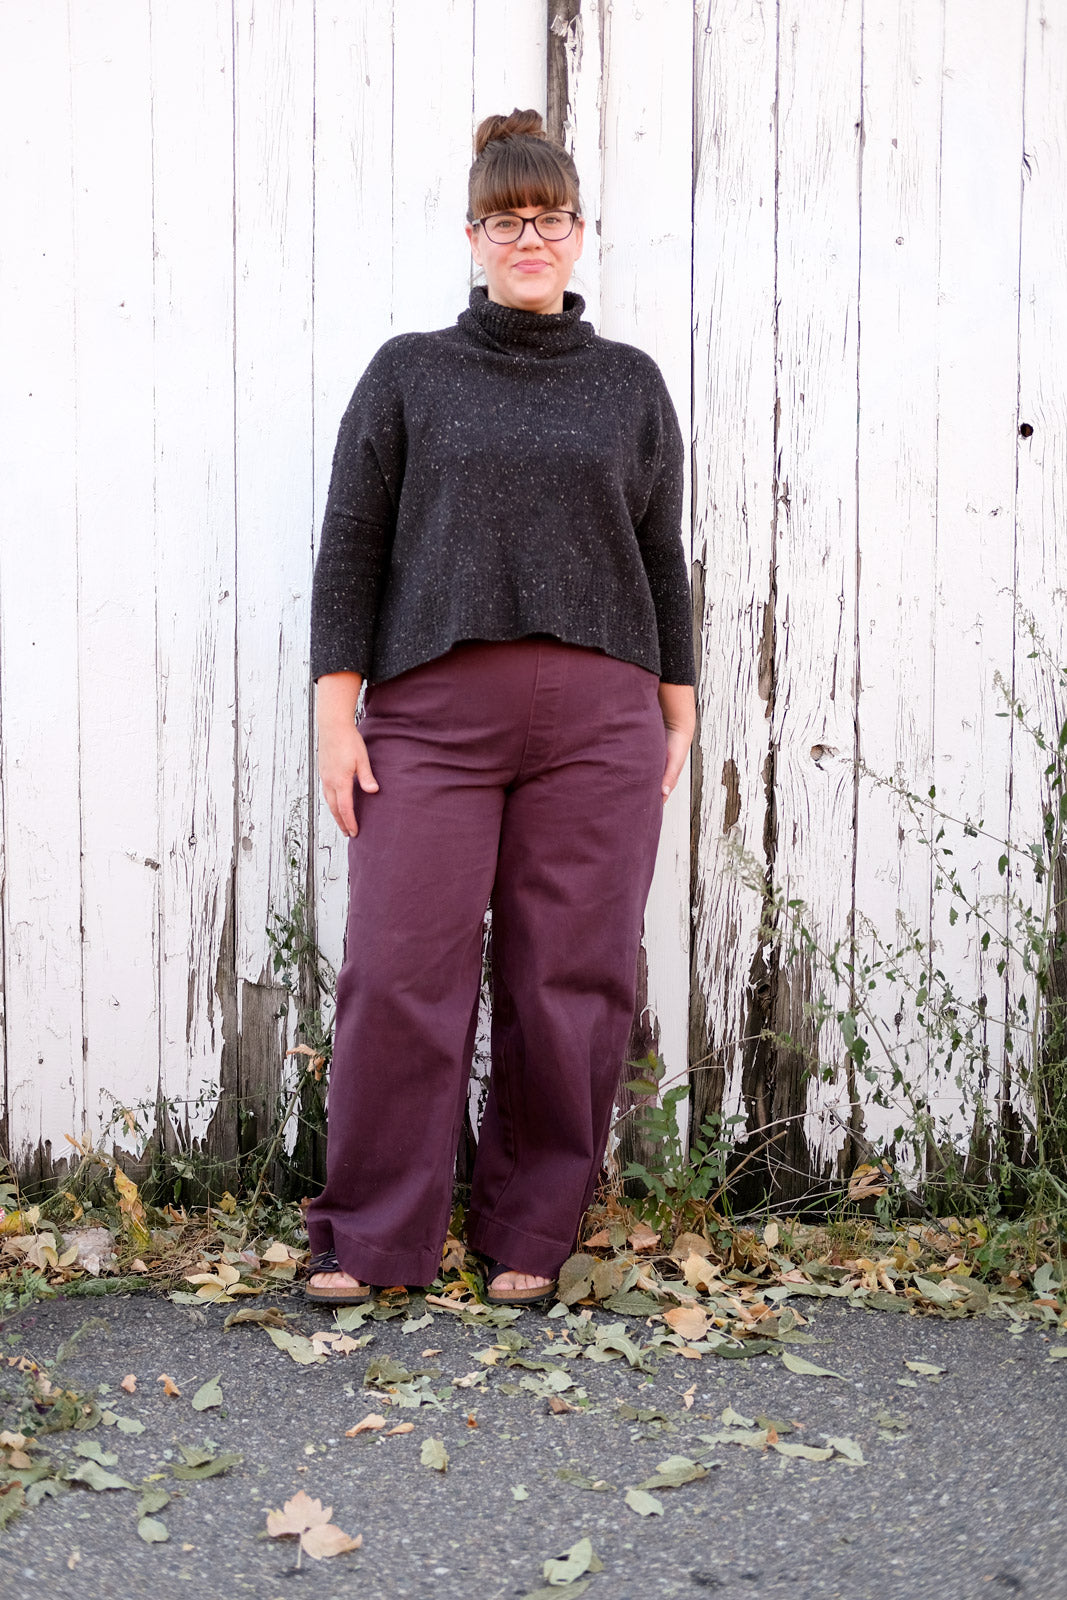 Kaylee's Brodeaux Jenny Trousers from Closet Case Patterns